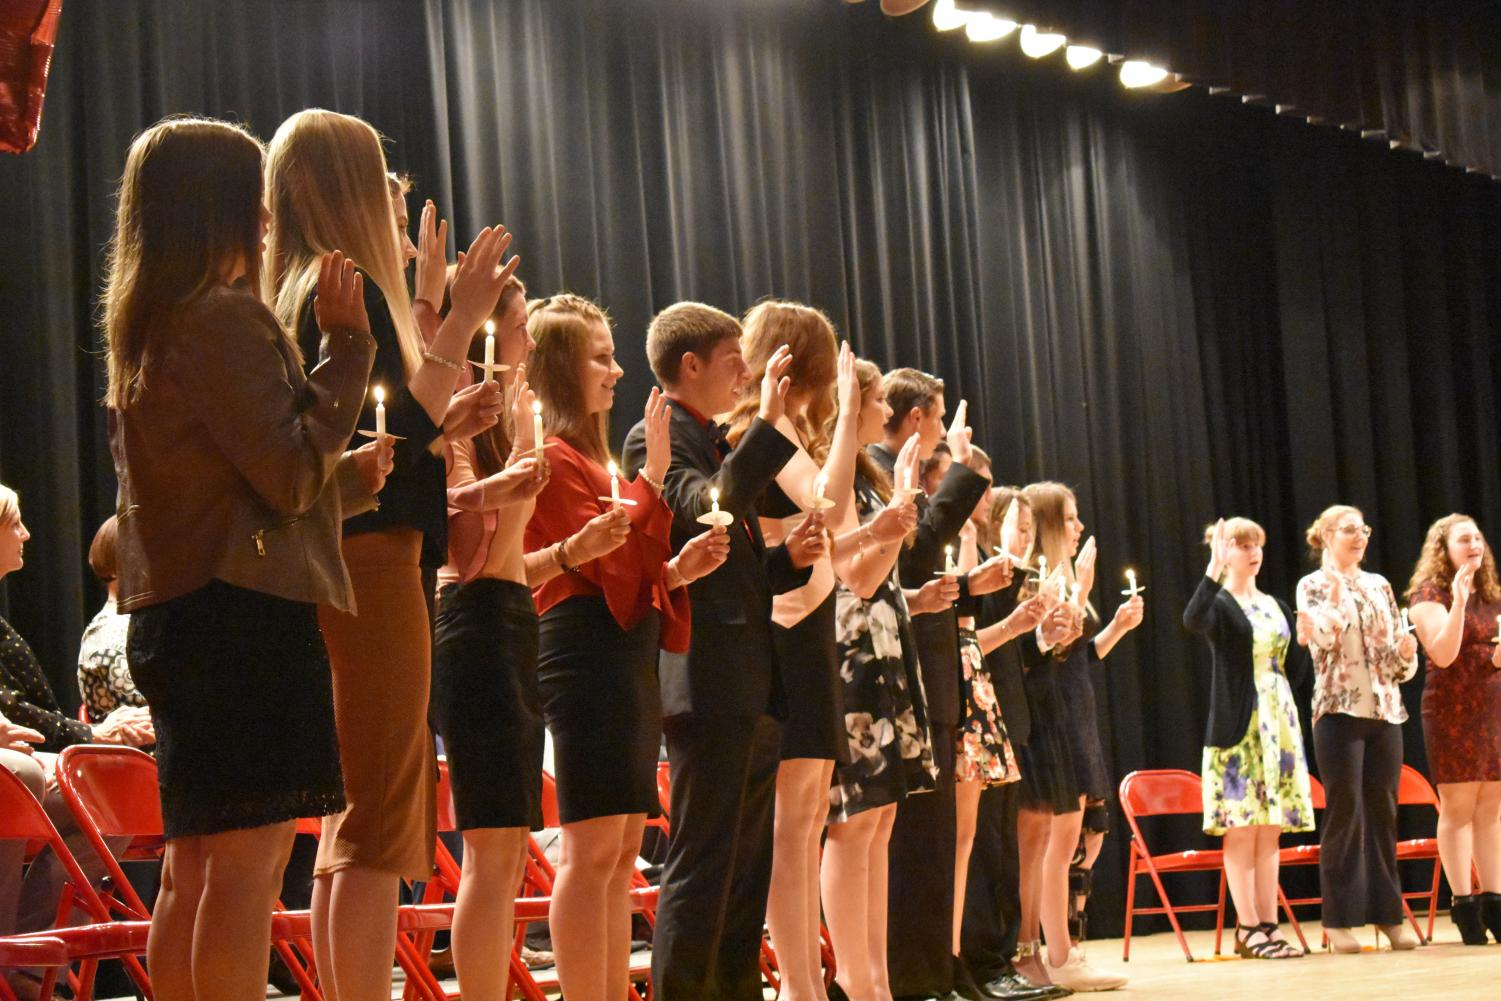 The new members, Jordyn Wright, Melissa Keith, Robin Kaufman, Claudia Huggins, Taylor Greene, Carson Gilarno, Marydeth Feits, Jenna Engel, David Eisenbrown, Kassandra DePoppe, Joshua Beck, Alexsia Barlamas and Myla Sharpless take the oath to be entered into NHS.